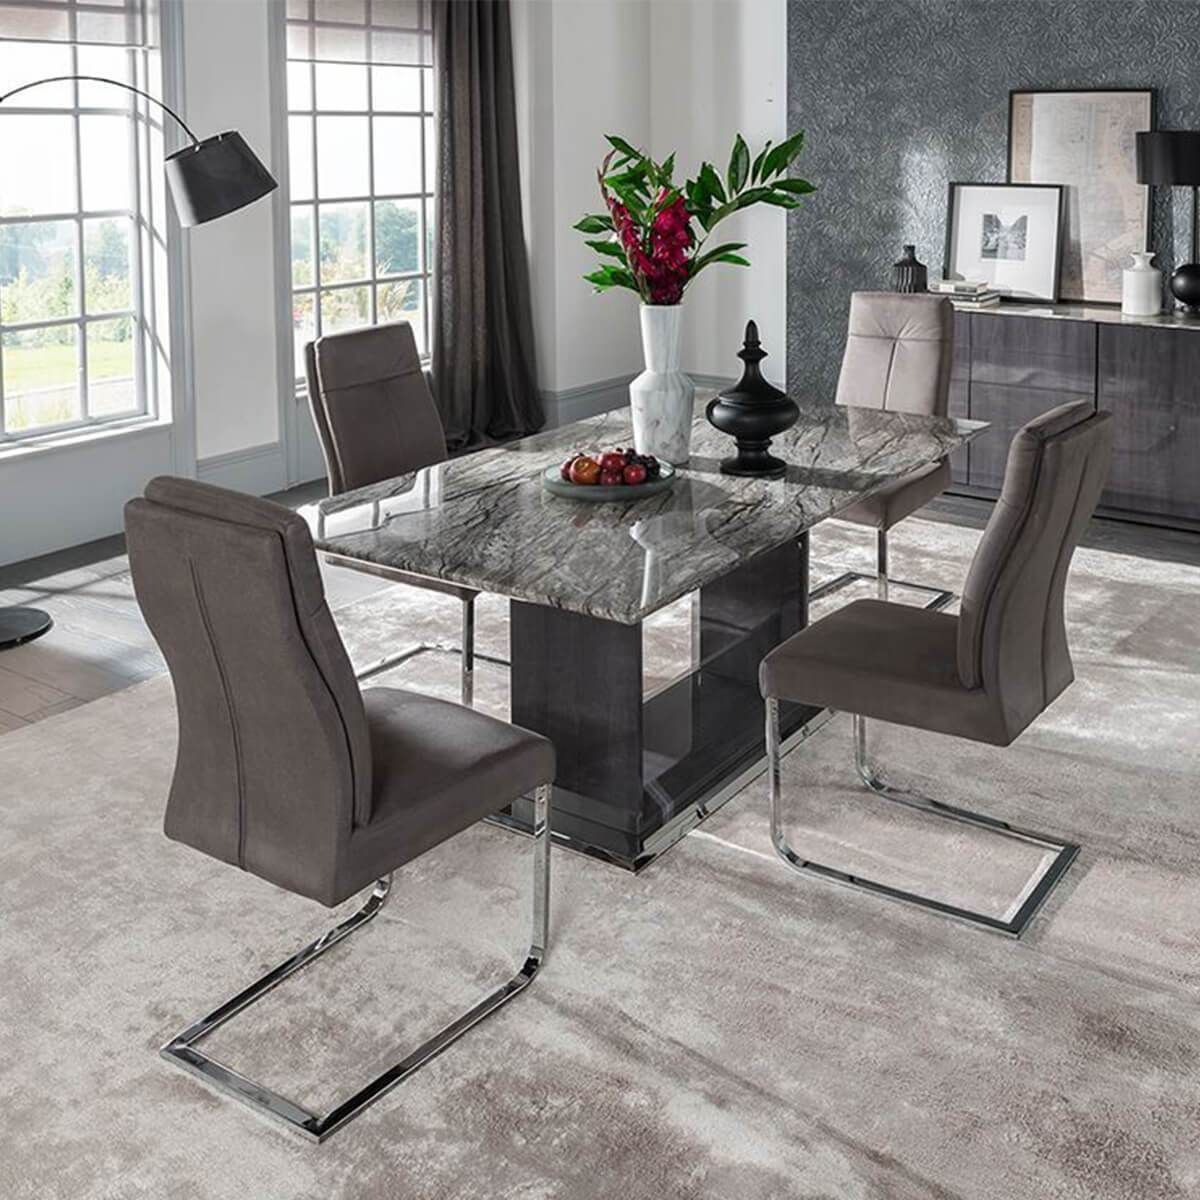 Next Set Of 2 Moda Iii Dining Chairs Grey Dining Table Marble